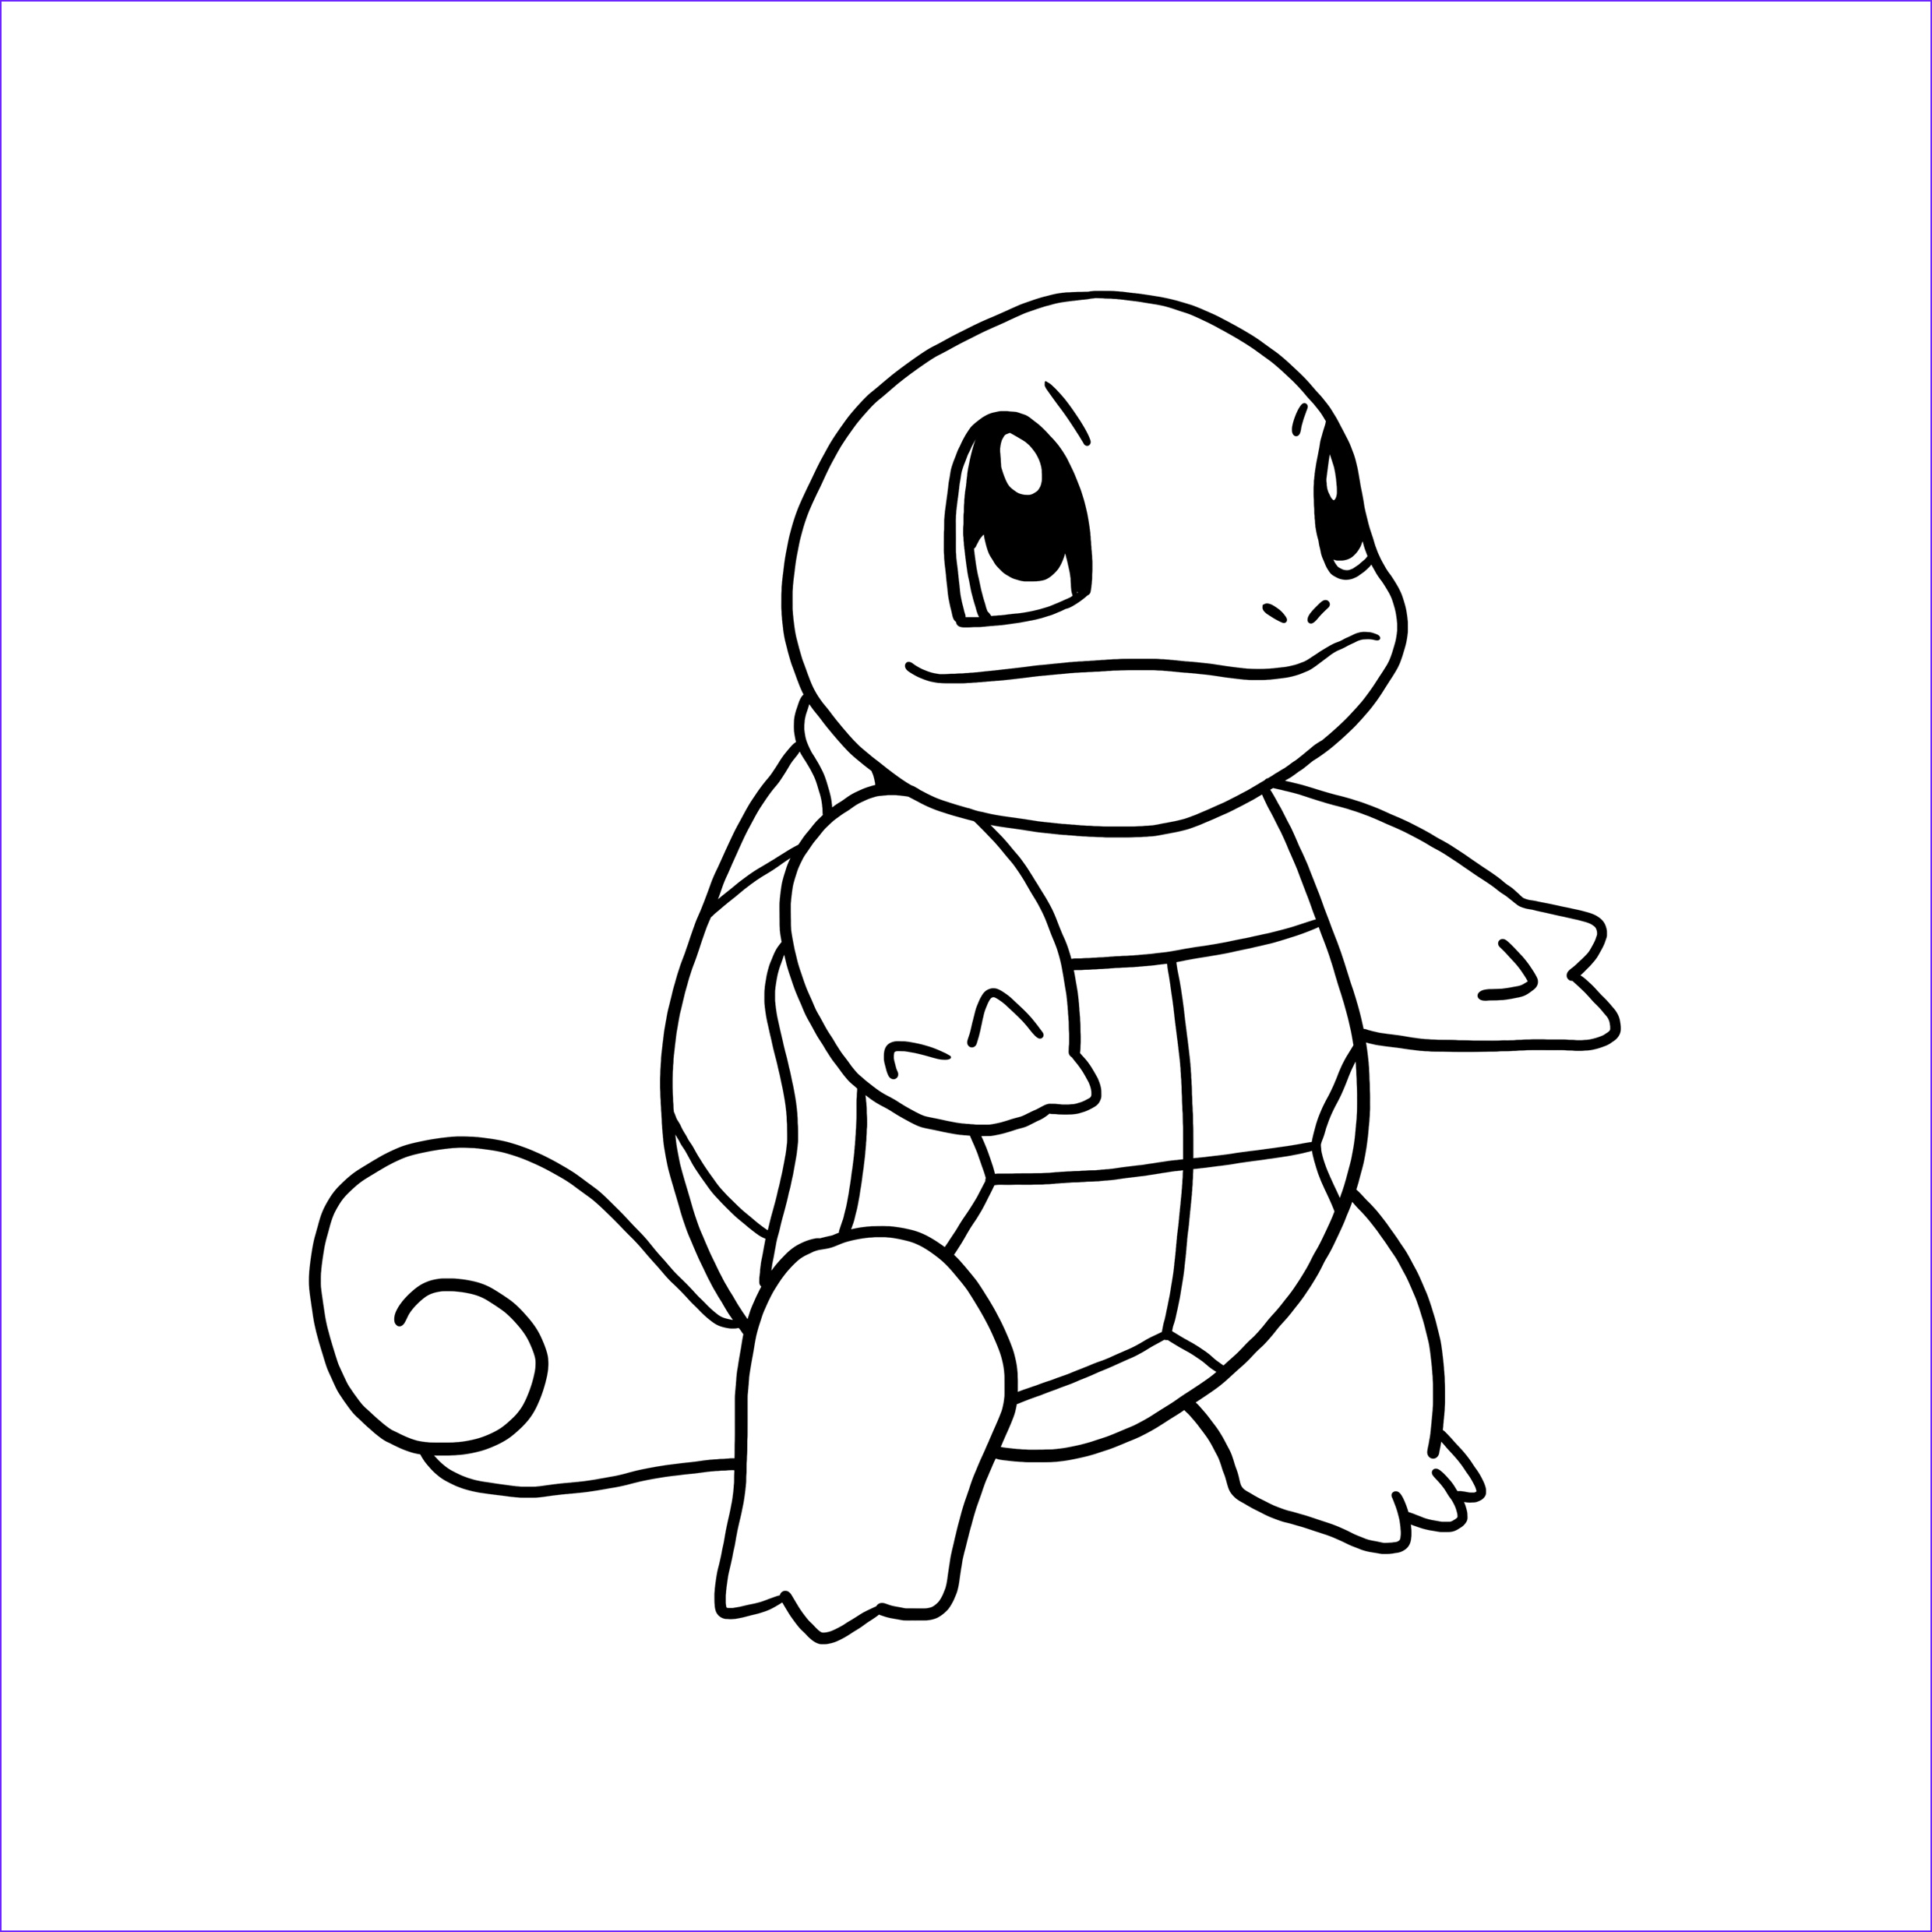 Squirtle Coloring Page Unique Photos Squirtle Coloring Page Coloring Home